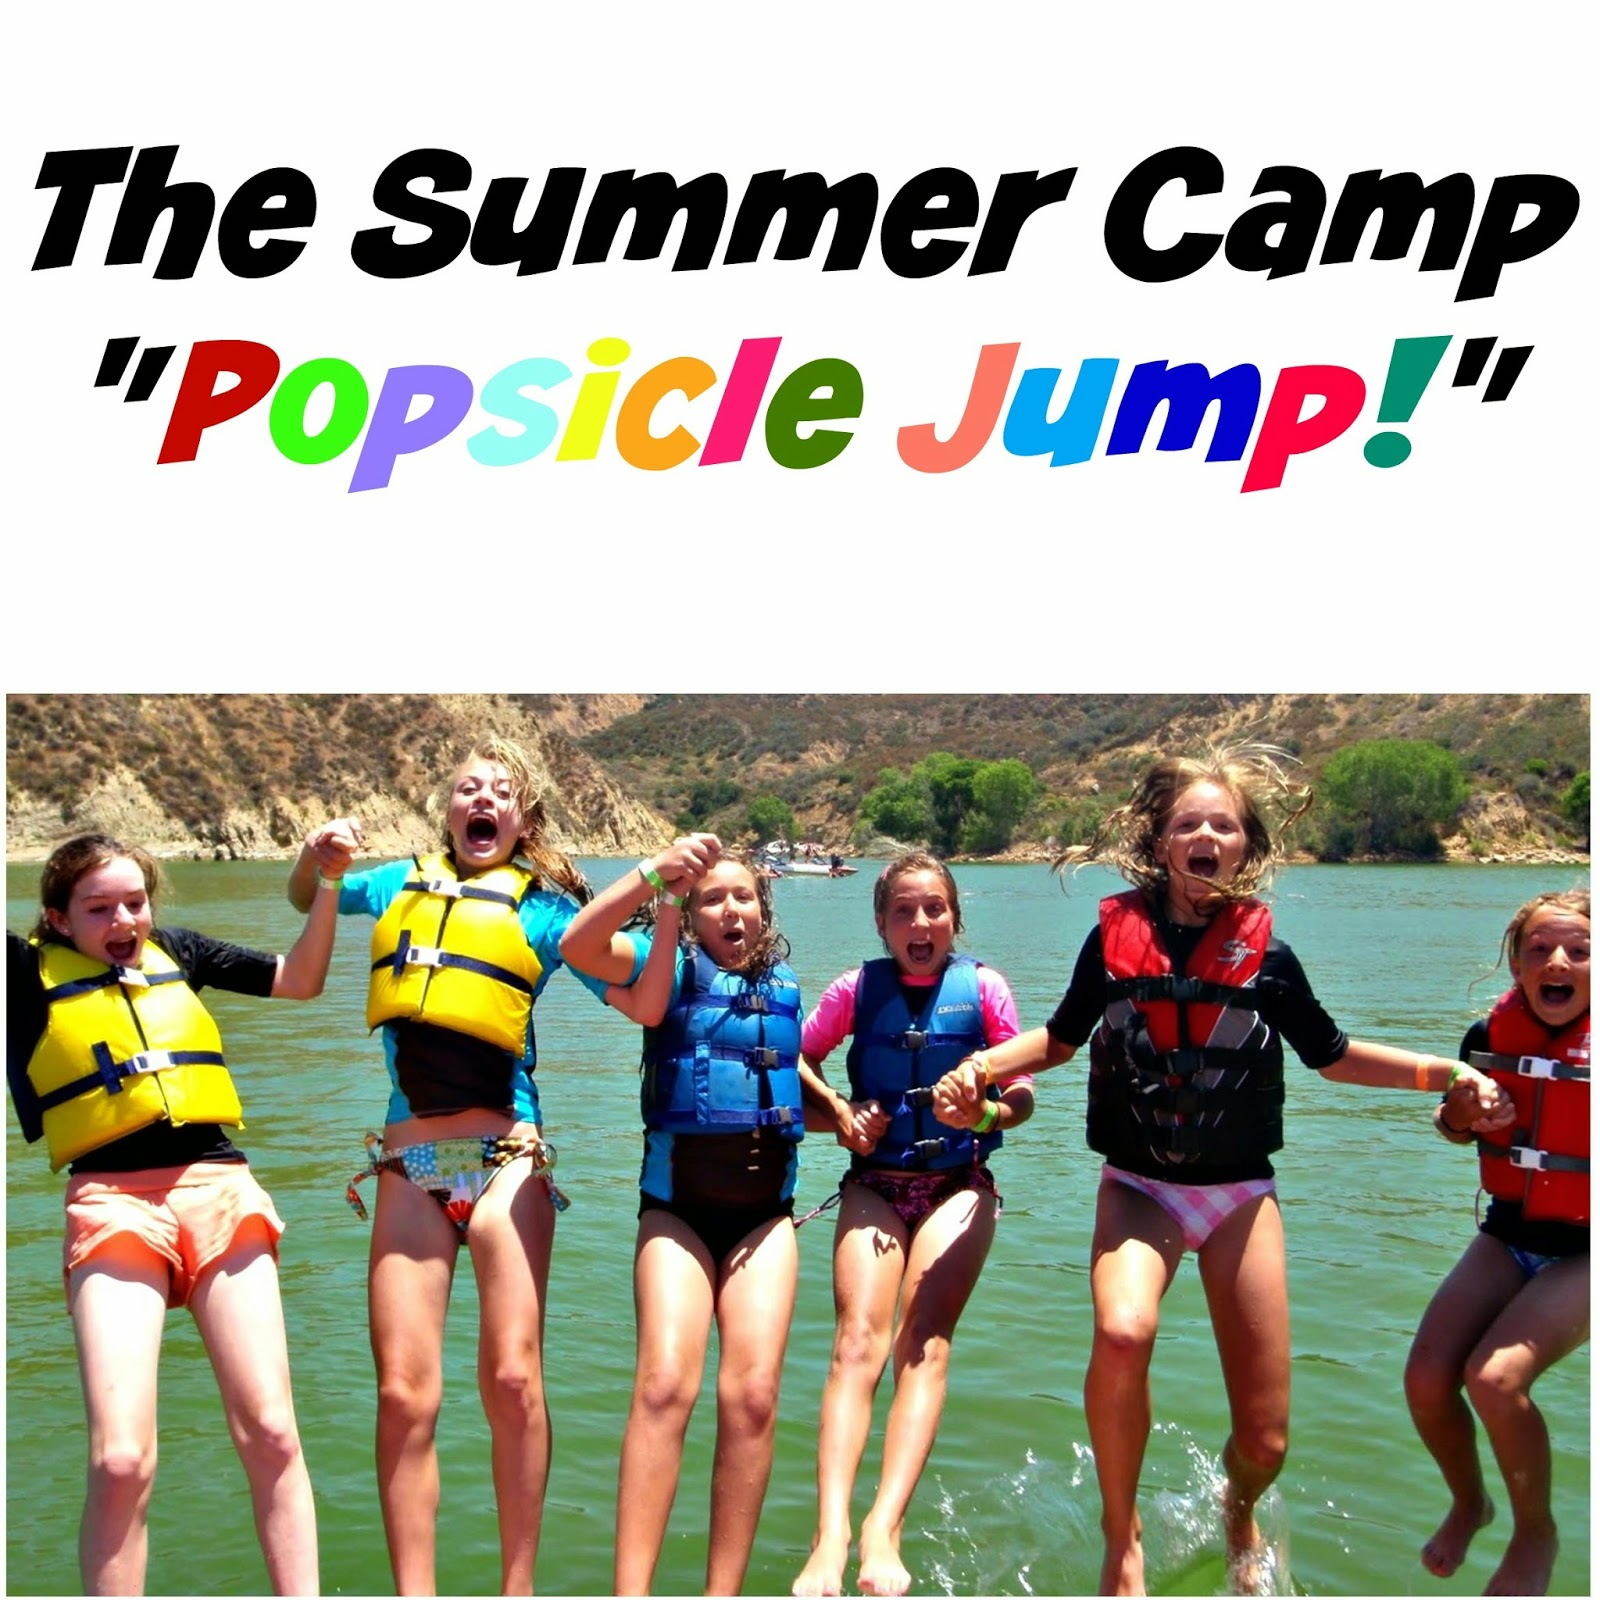 Teenage girls jumping together off the back of a boat playing the Popsicle Jump game at Aloha Beach Camp summer camp.